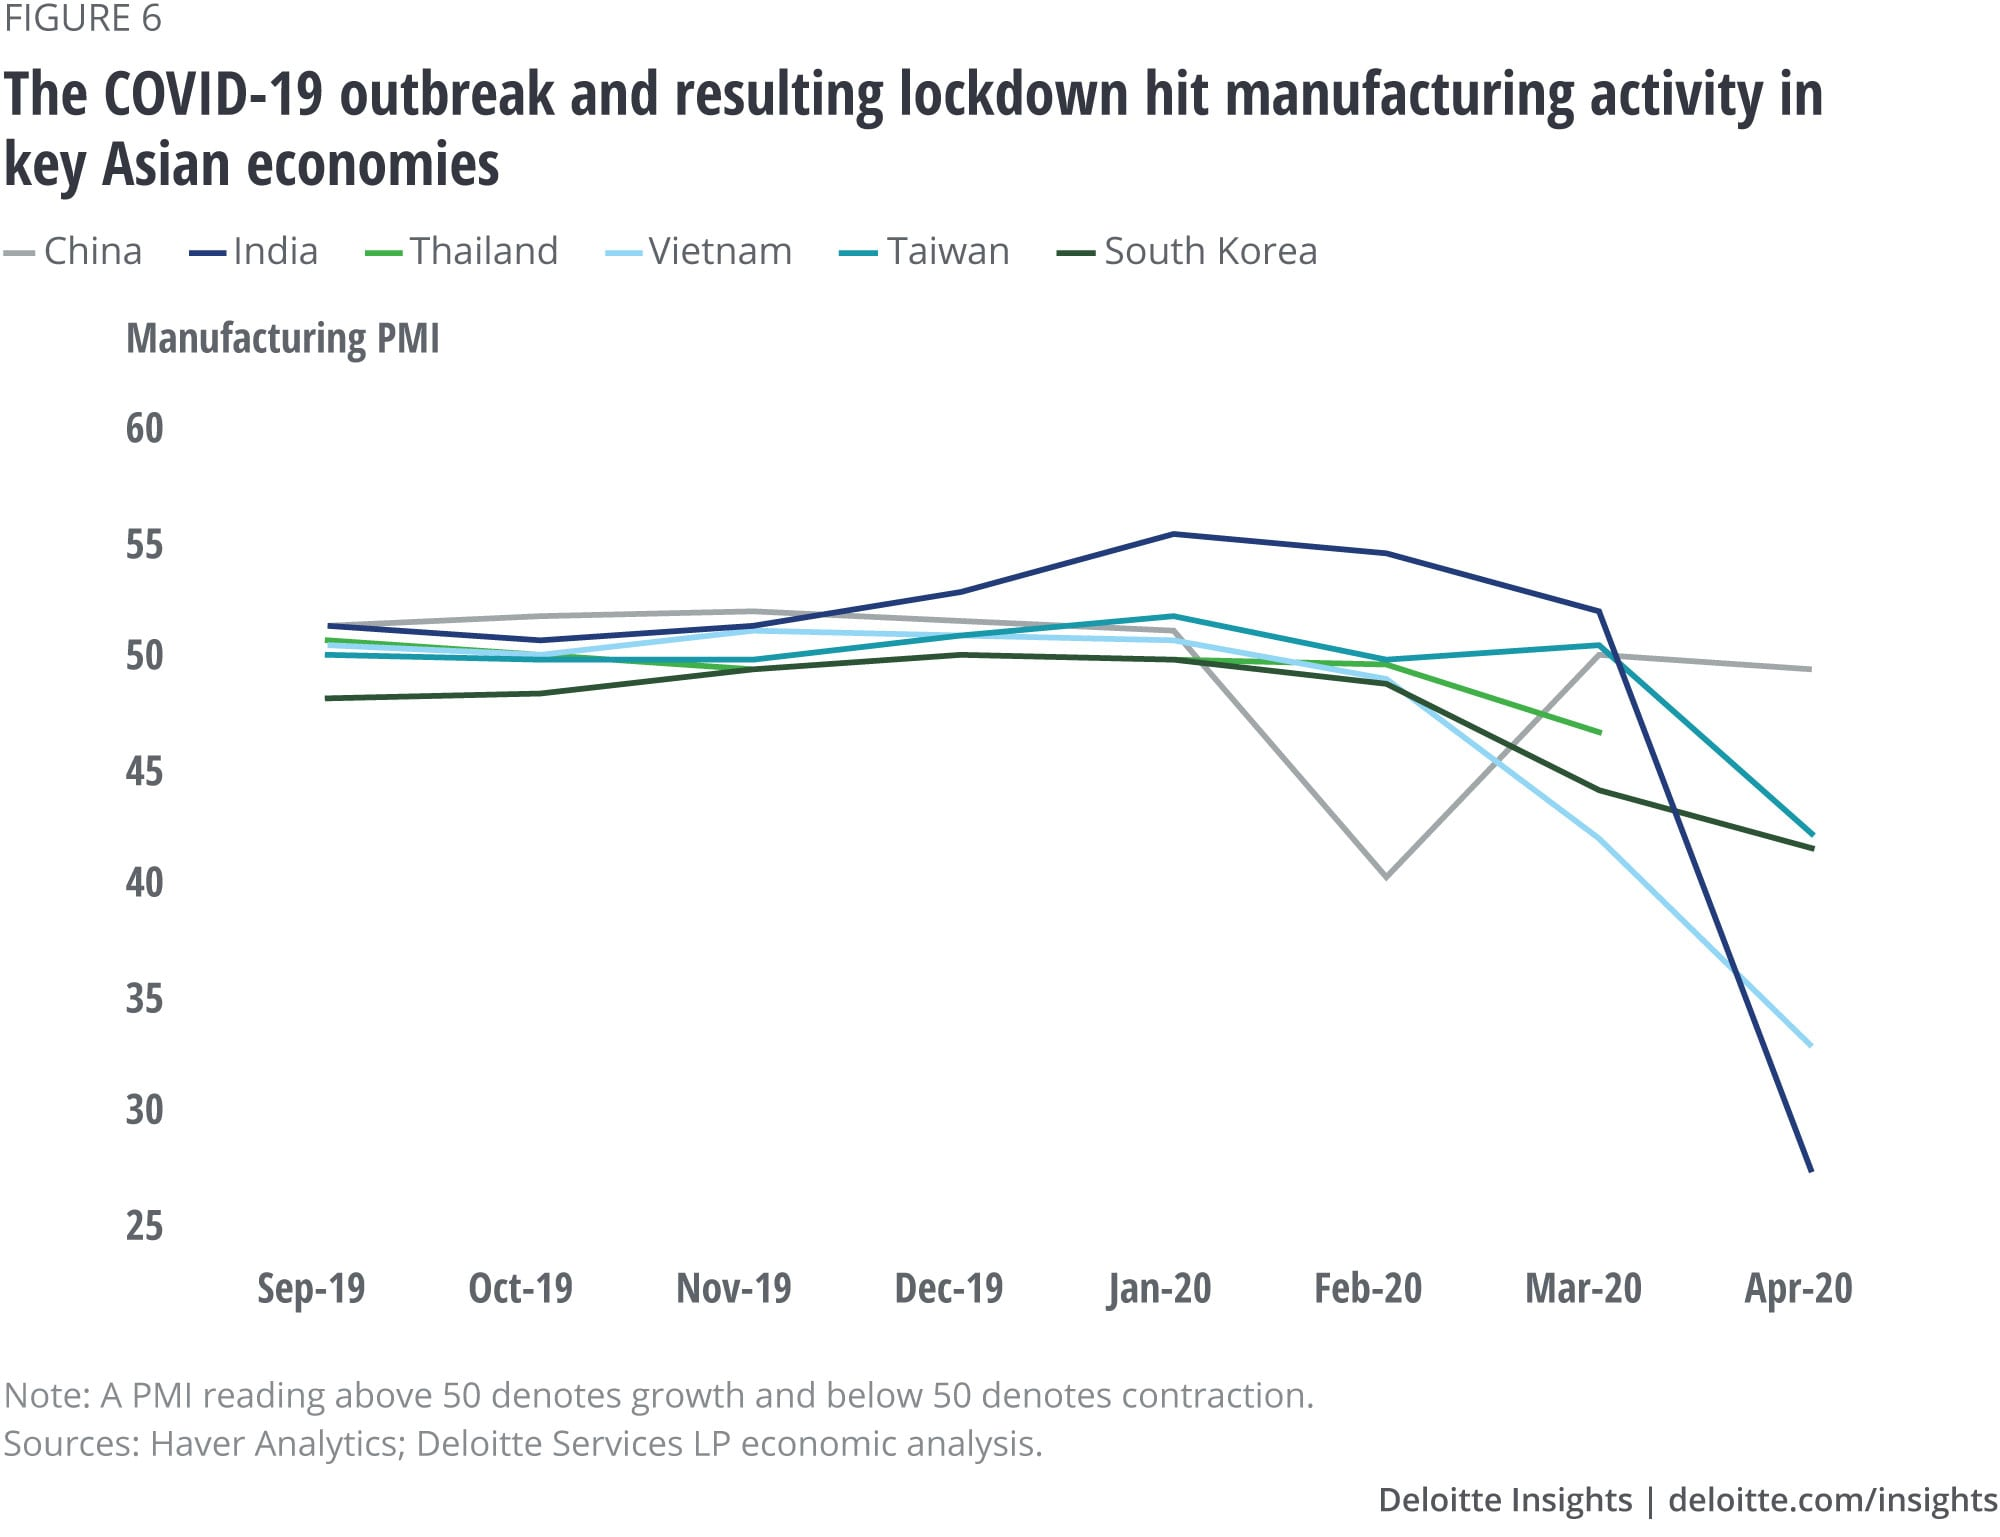 The COVID-19 outbreak and resulting lockdown hit manufacturing activity in key Asian economies